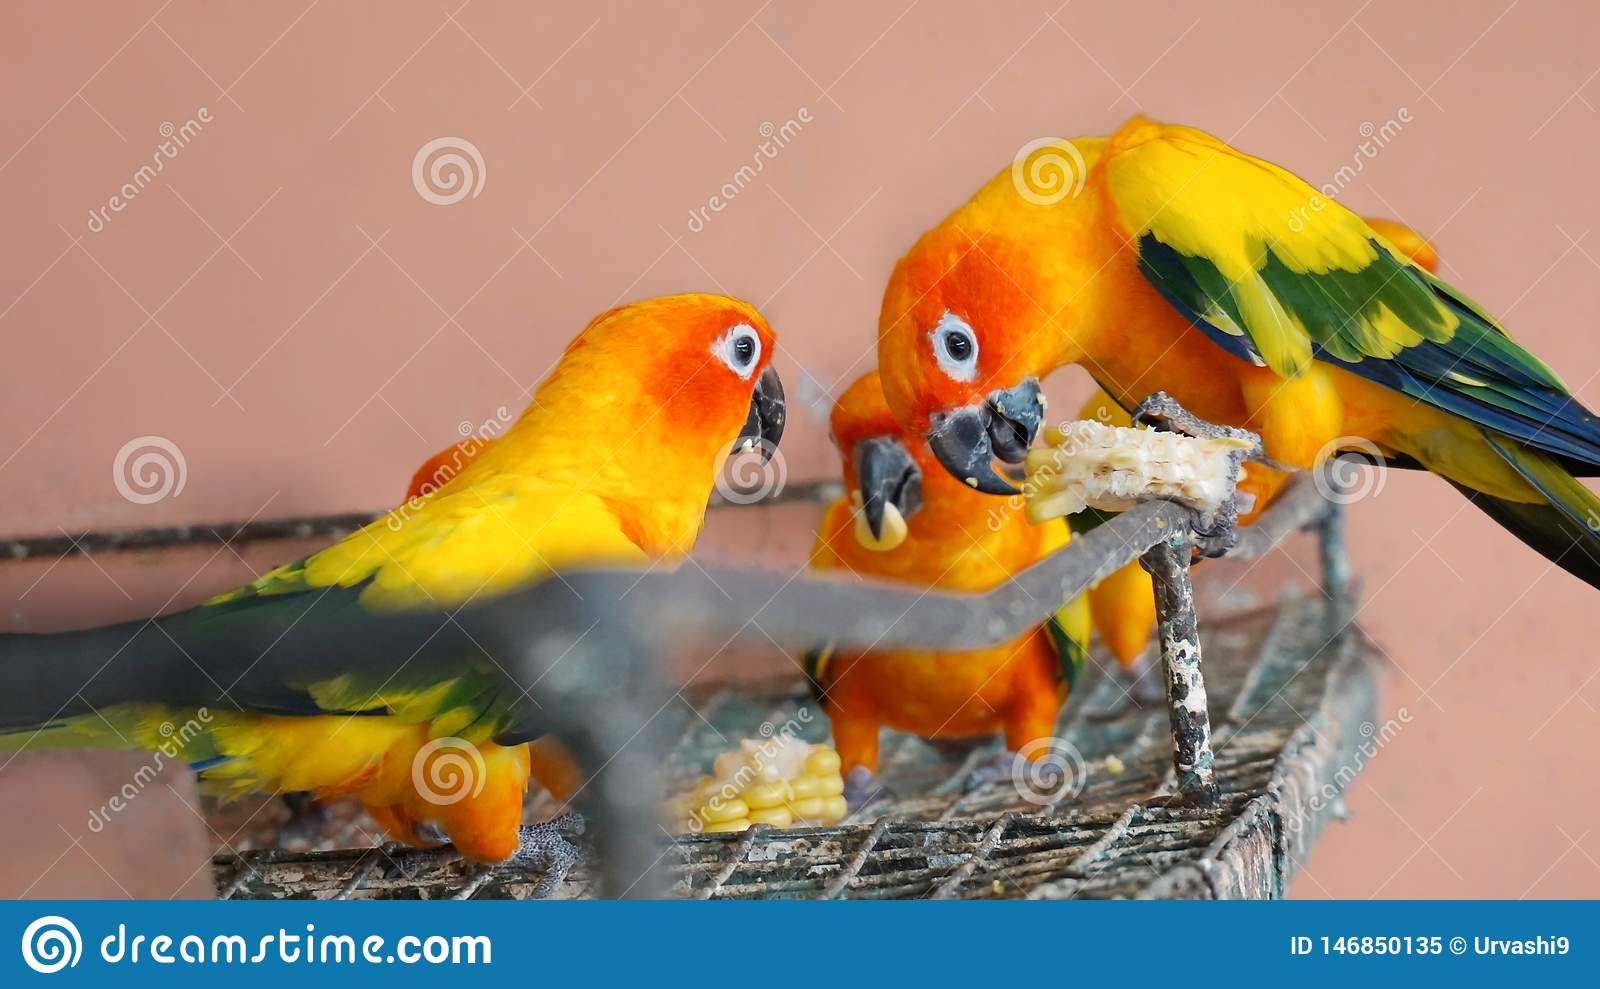 Group of sun conure parrot